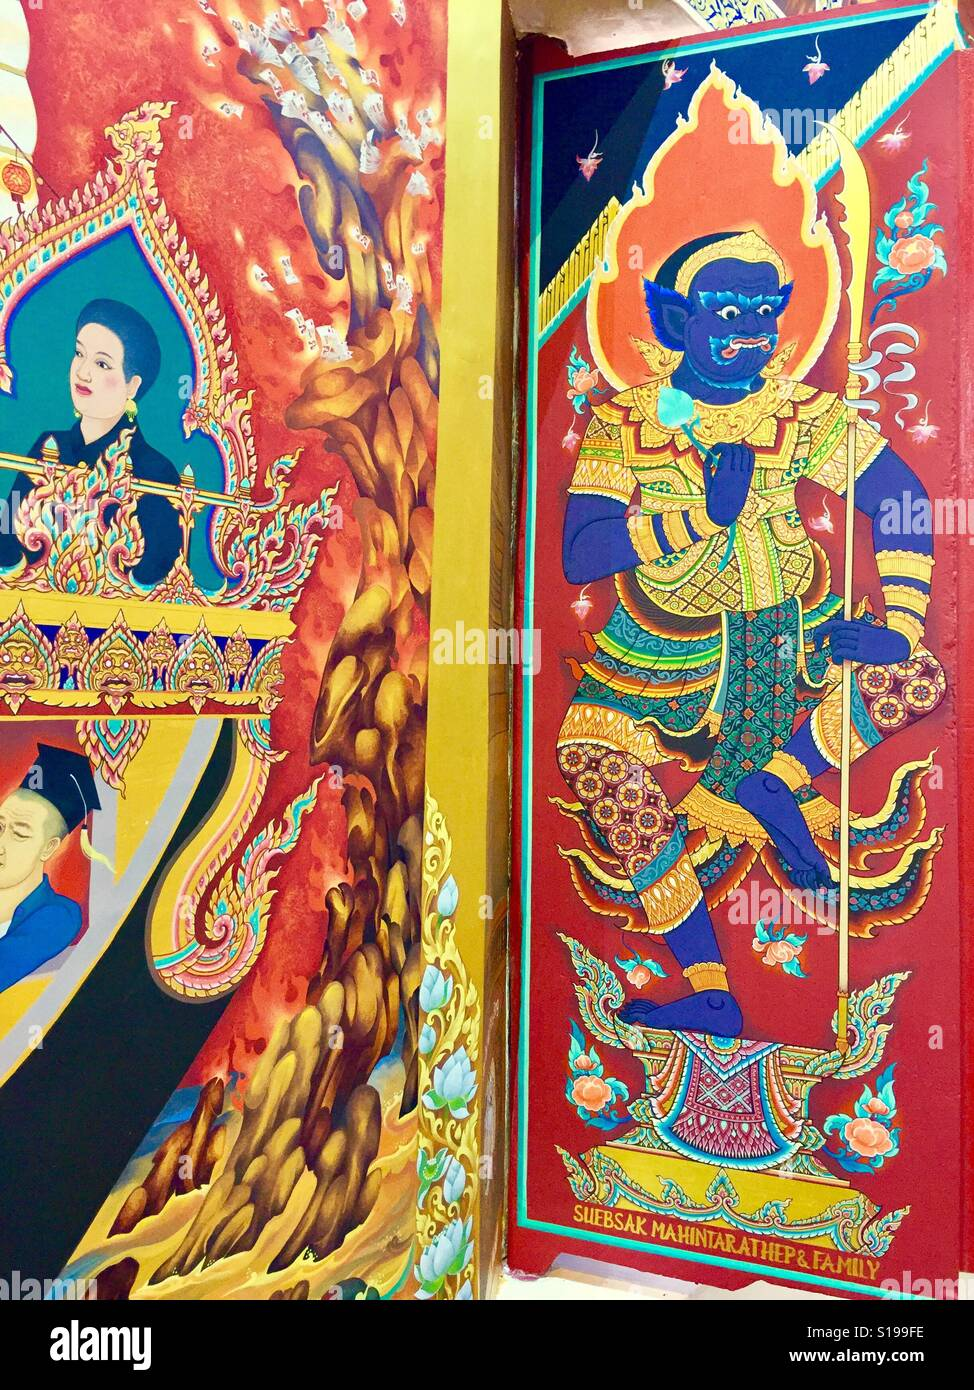 Thai buddhist art mural painting at wat ananda metyarama for Buddha mural art